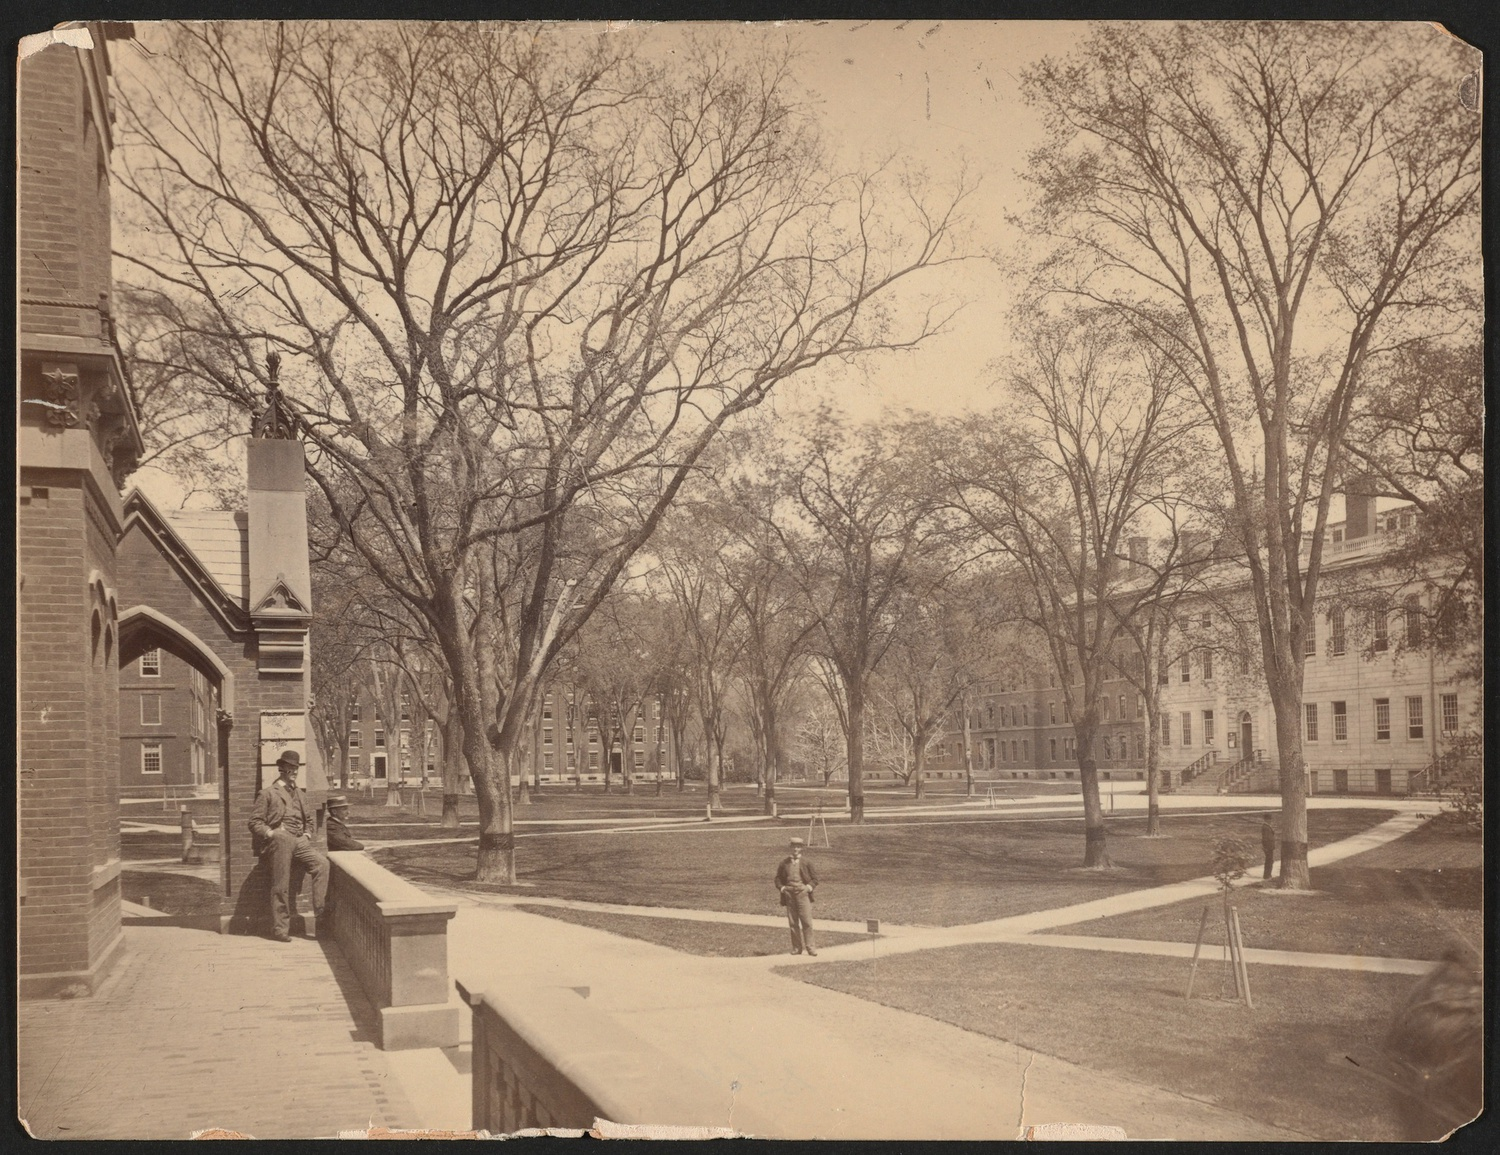 In an old photograph of Harvard Yard, University Hall and various First-year Dorms can be observed.